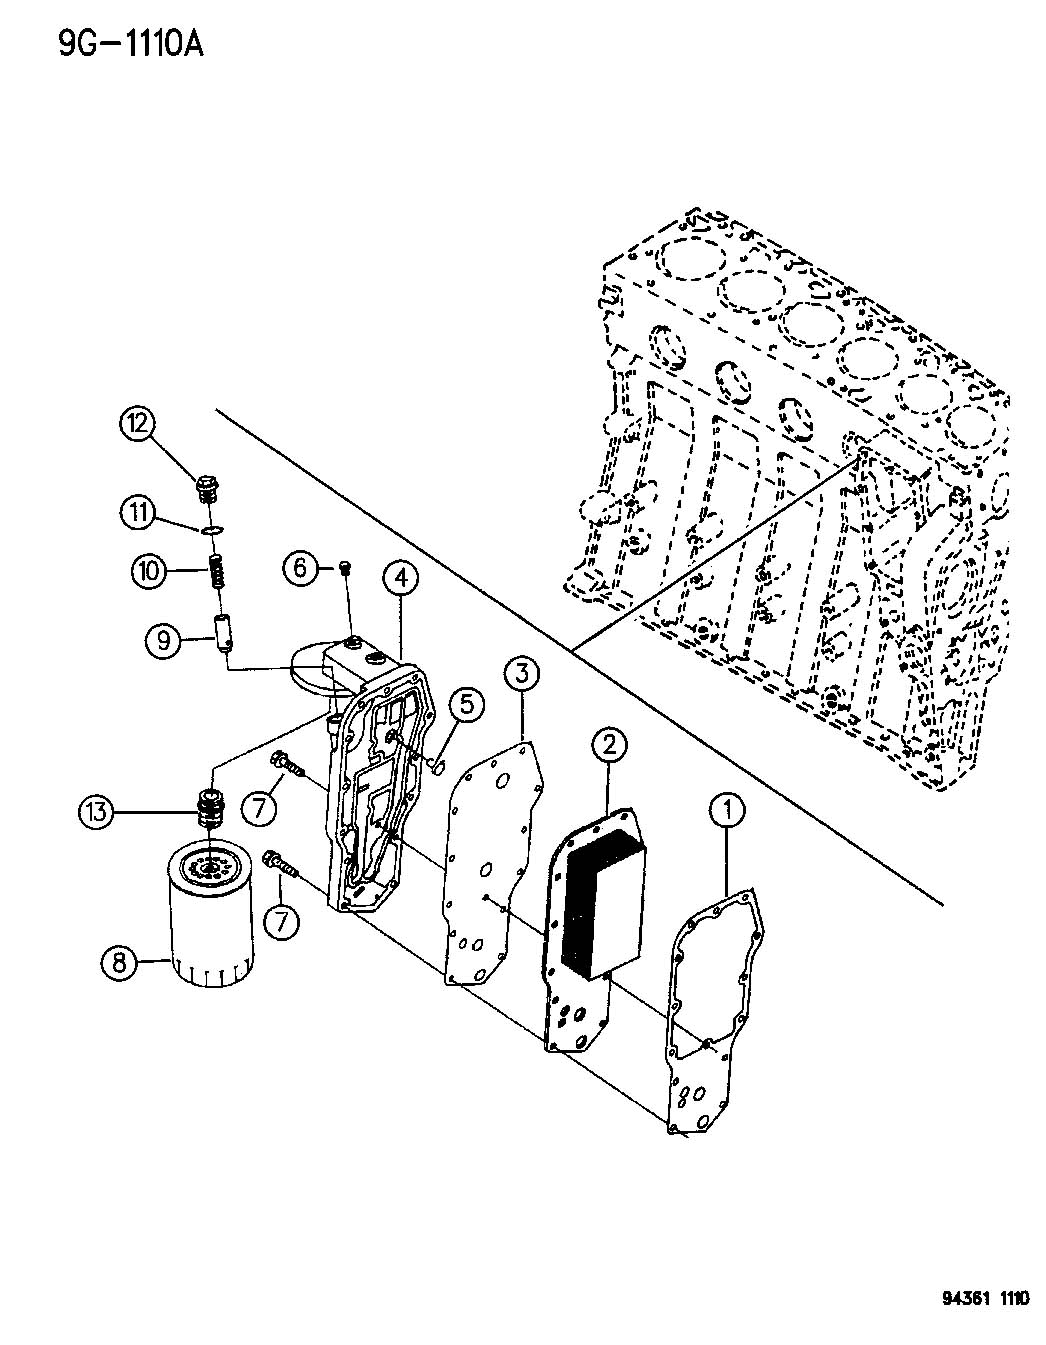 Chevy Duramax Engine Diagram moreover Ewrazphoto Nylon Sling Protector further I 24768780 Chrysler Dodge 426 Hemi Oil Pump Gasket as well Wr 6674 302 additionally I 22725917 65 73 Mustang 351w Sil Cer. on chrysler race engines